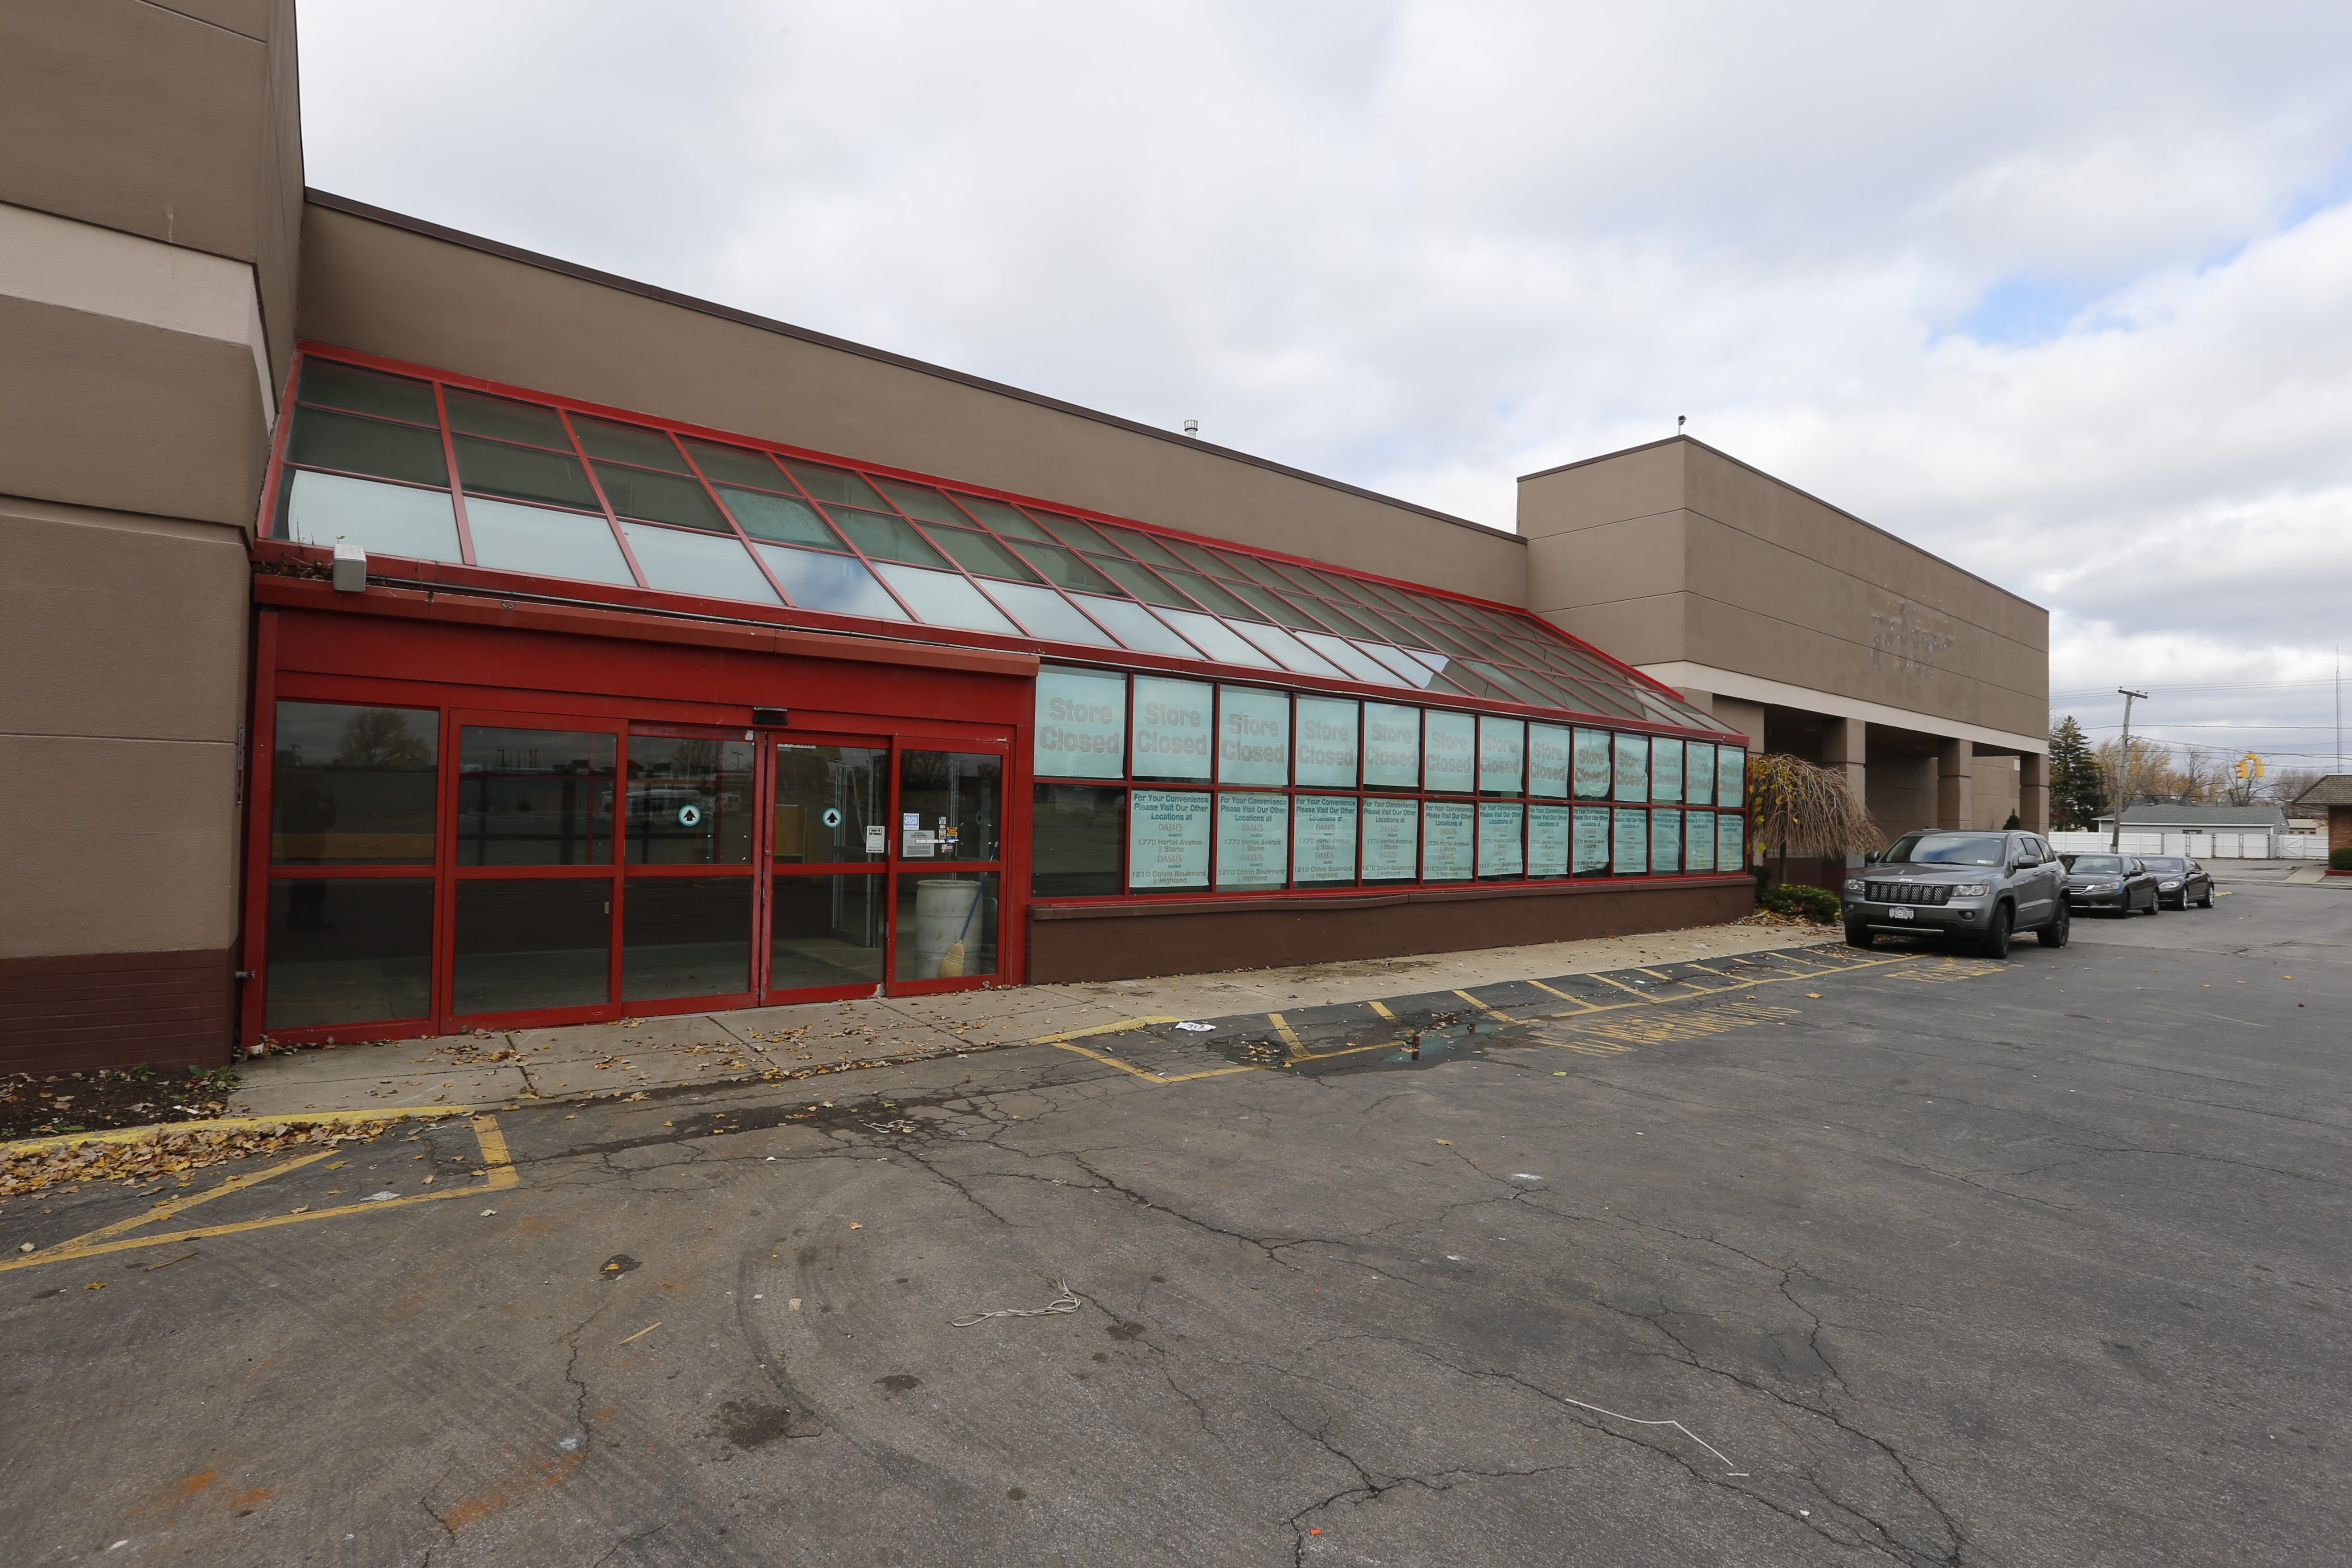 Joe Dash, owner of the now-closed Dash's Store on Kenmore Avenue, wants to build a storage facility on the former Budweys site.